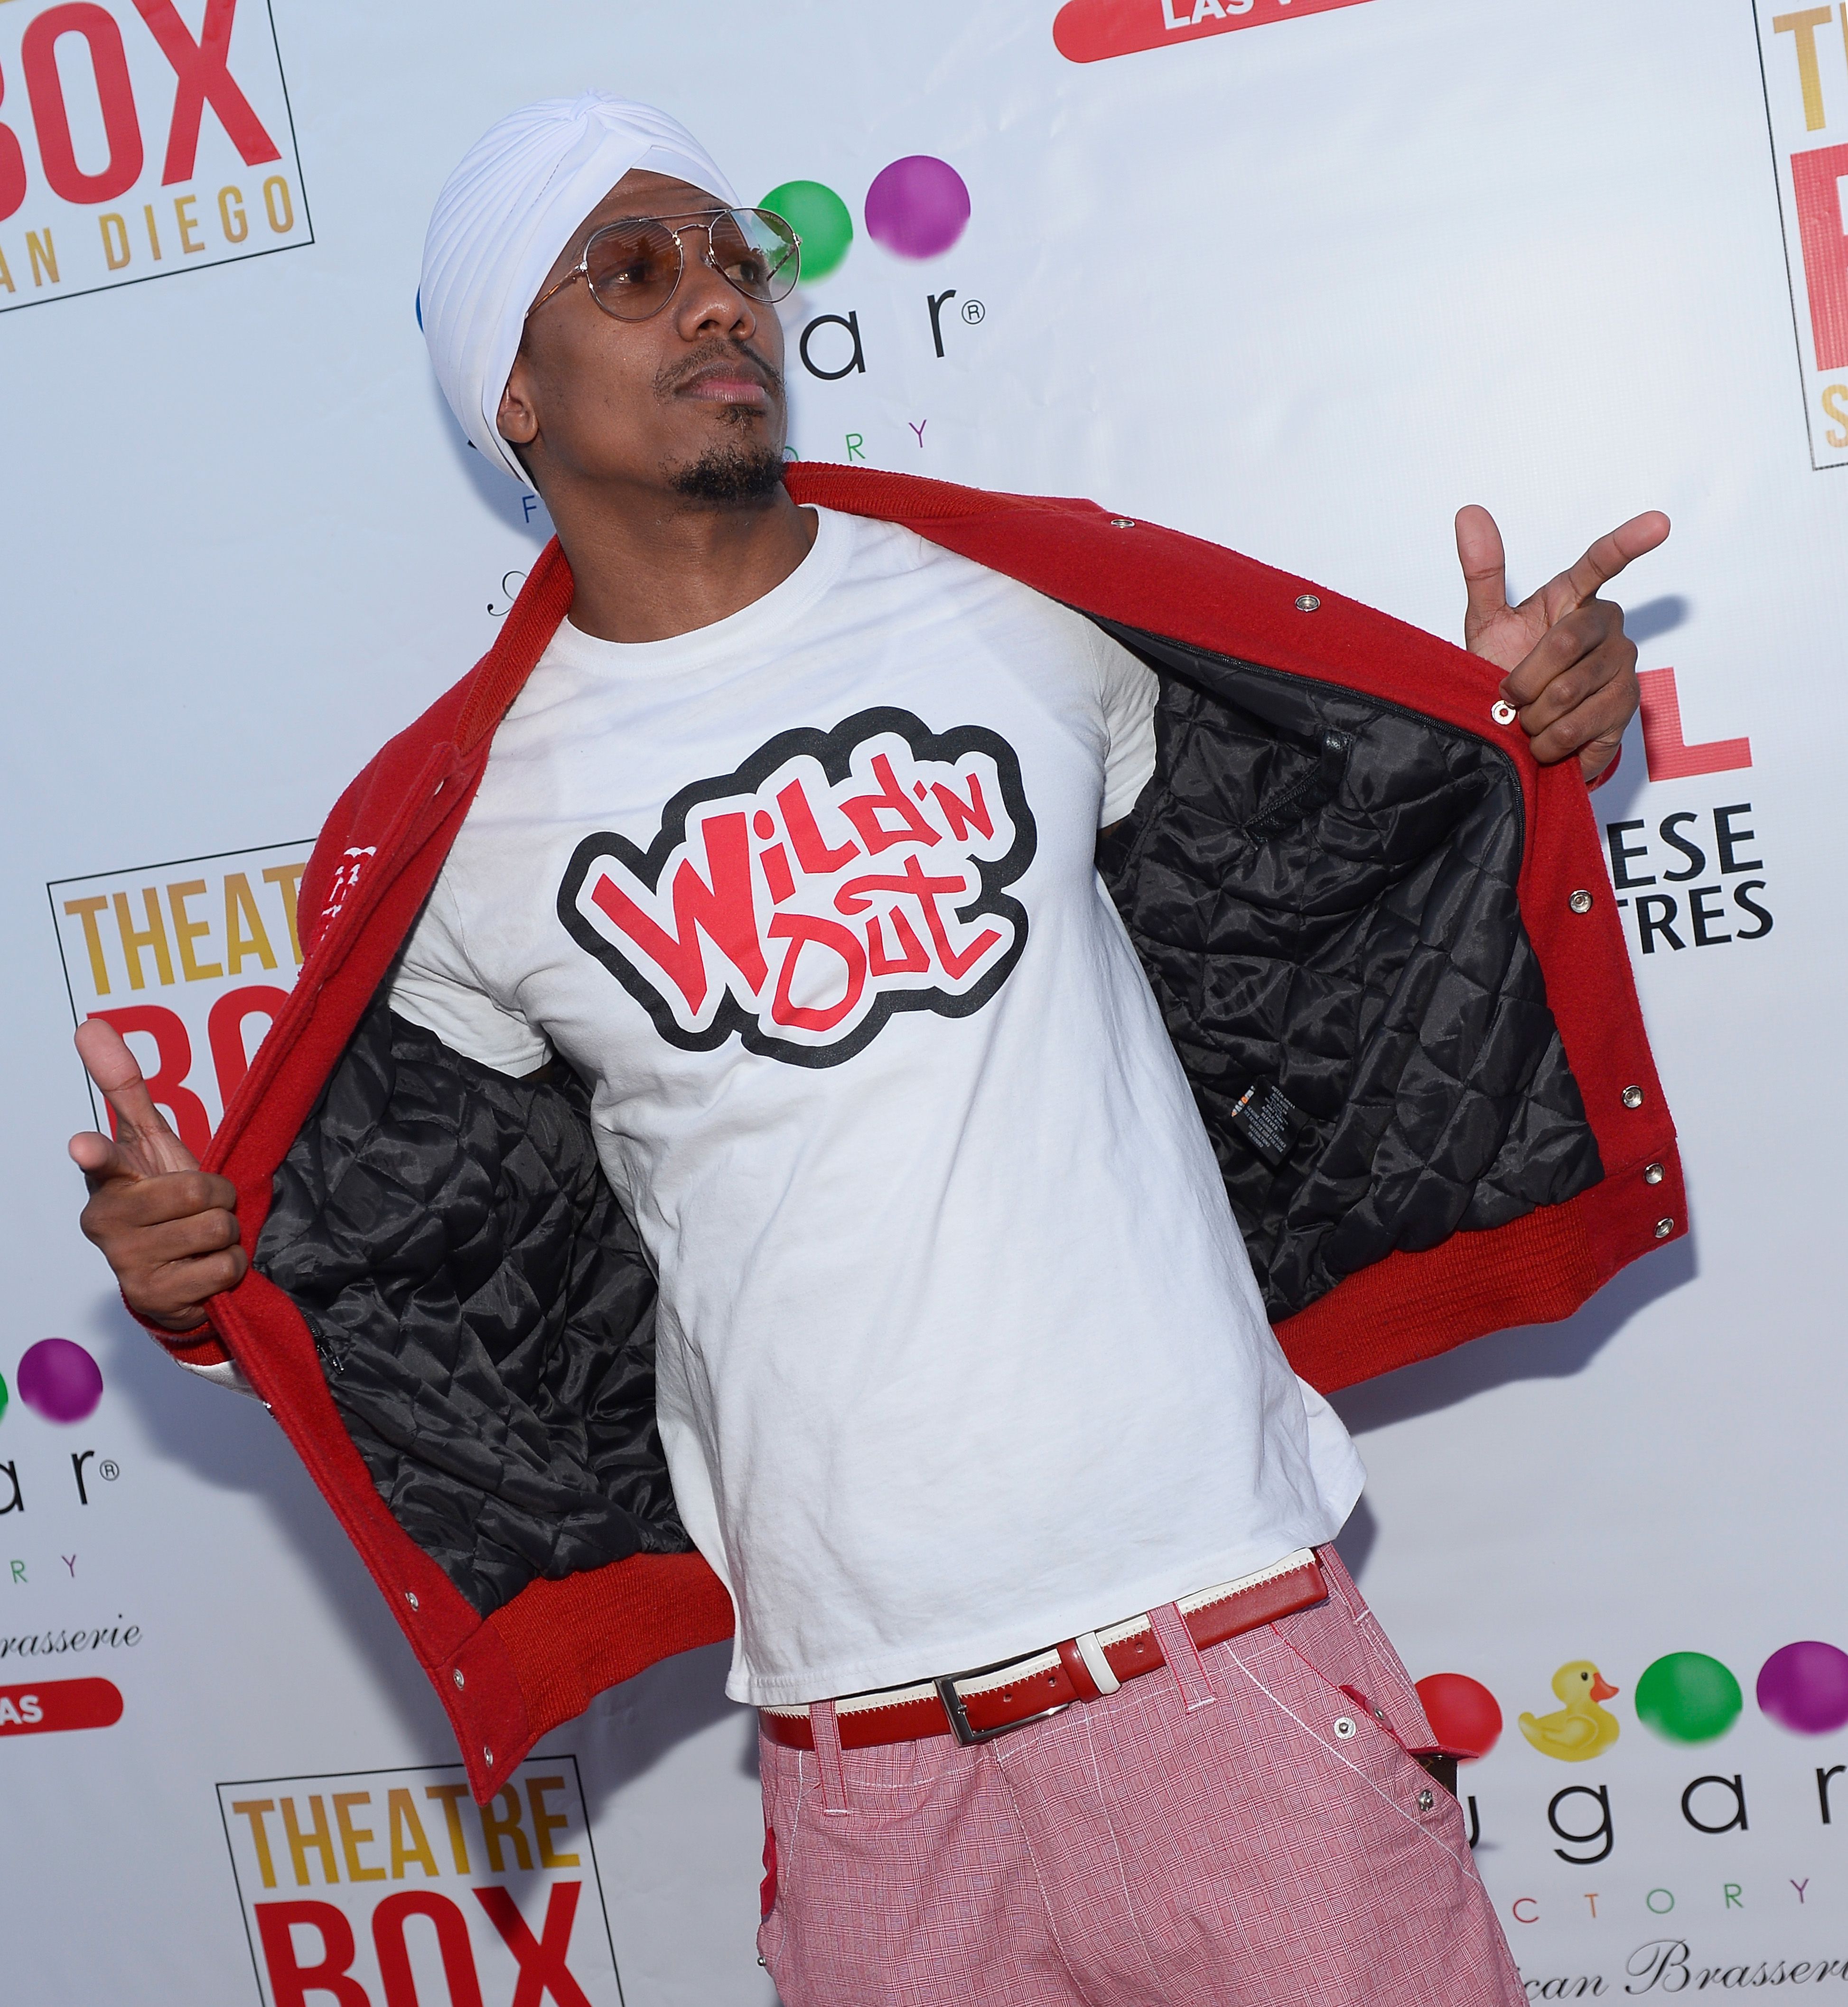 Theatre Box Presents Collaboration Of The Famed Sugar Factory American Brasserie, Hollywood's Famous TCL Chinese Theatre And Nick Cannon's Wild' N Out Sports Bar And Arcade At Sugar Factory Las Vegas